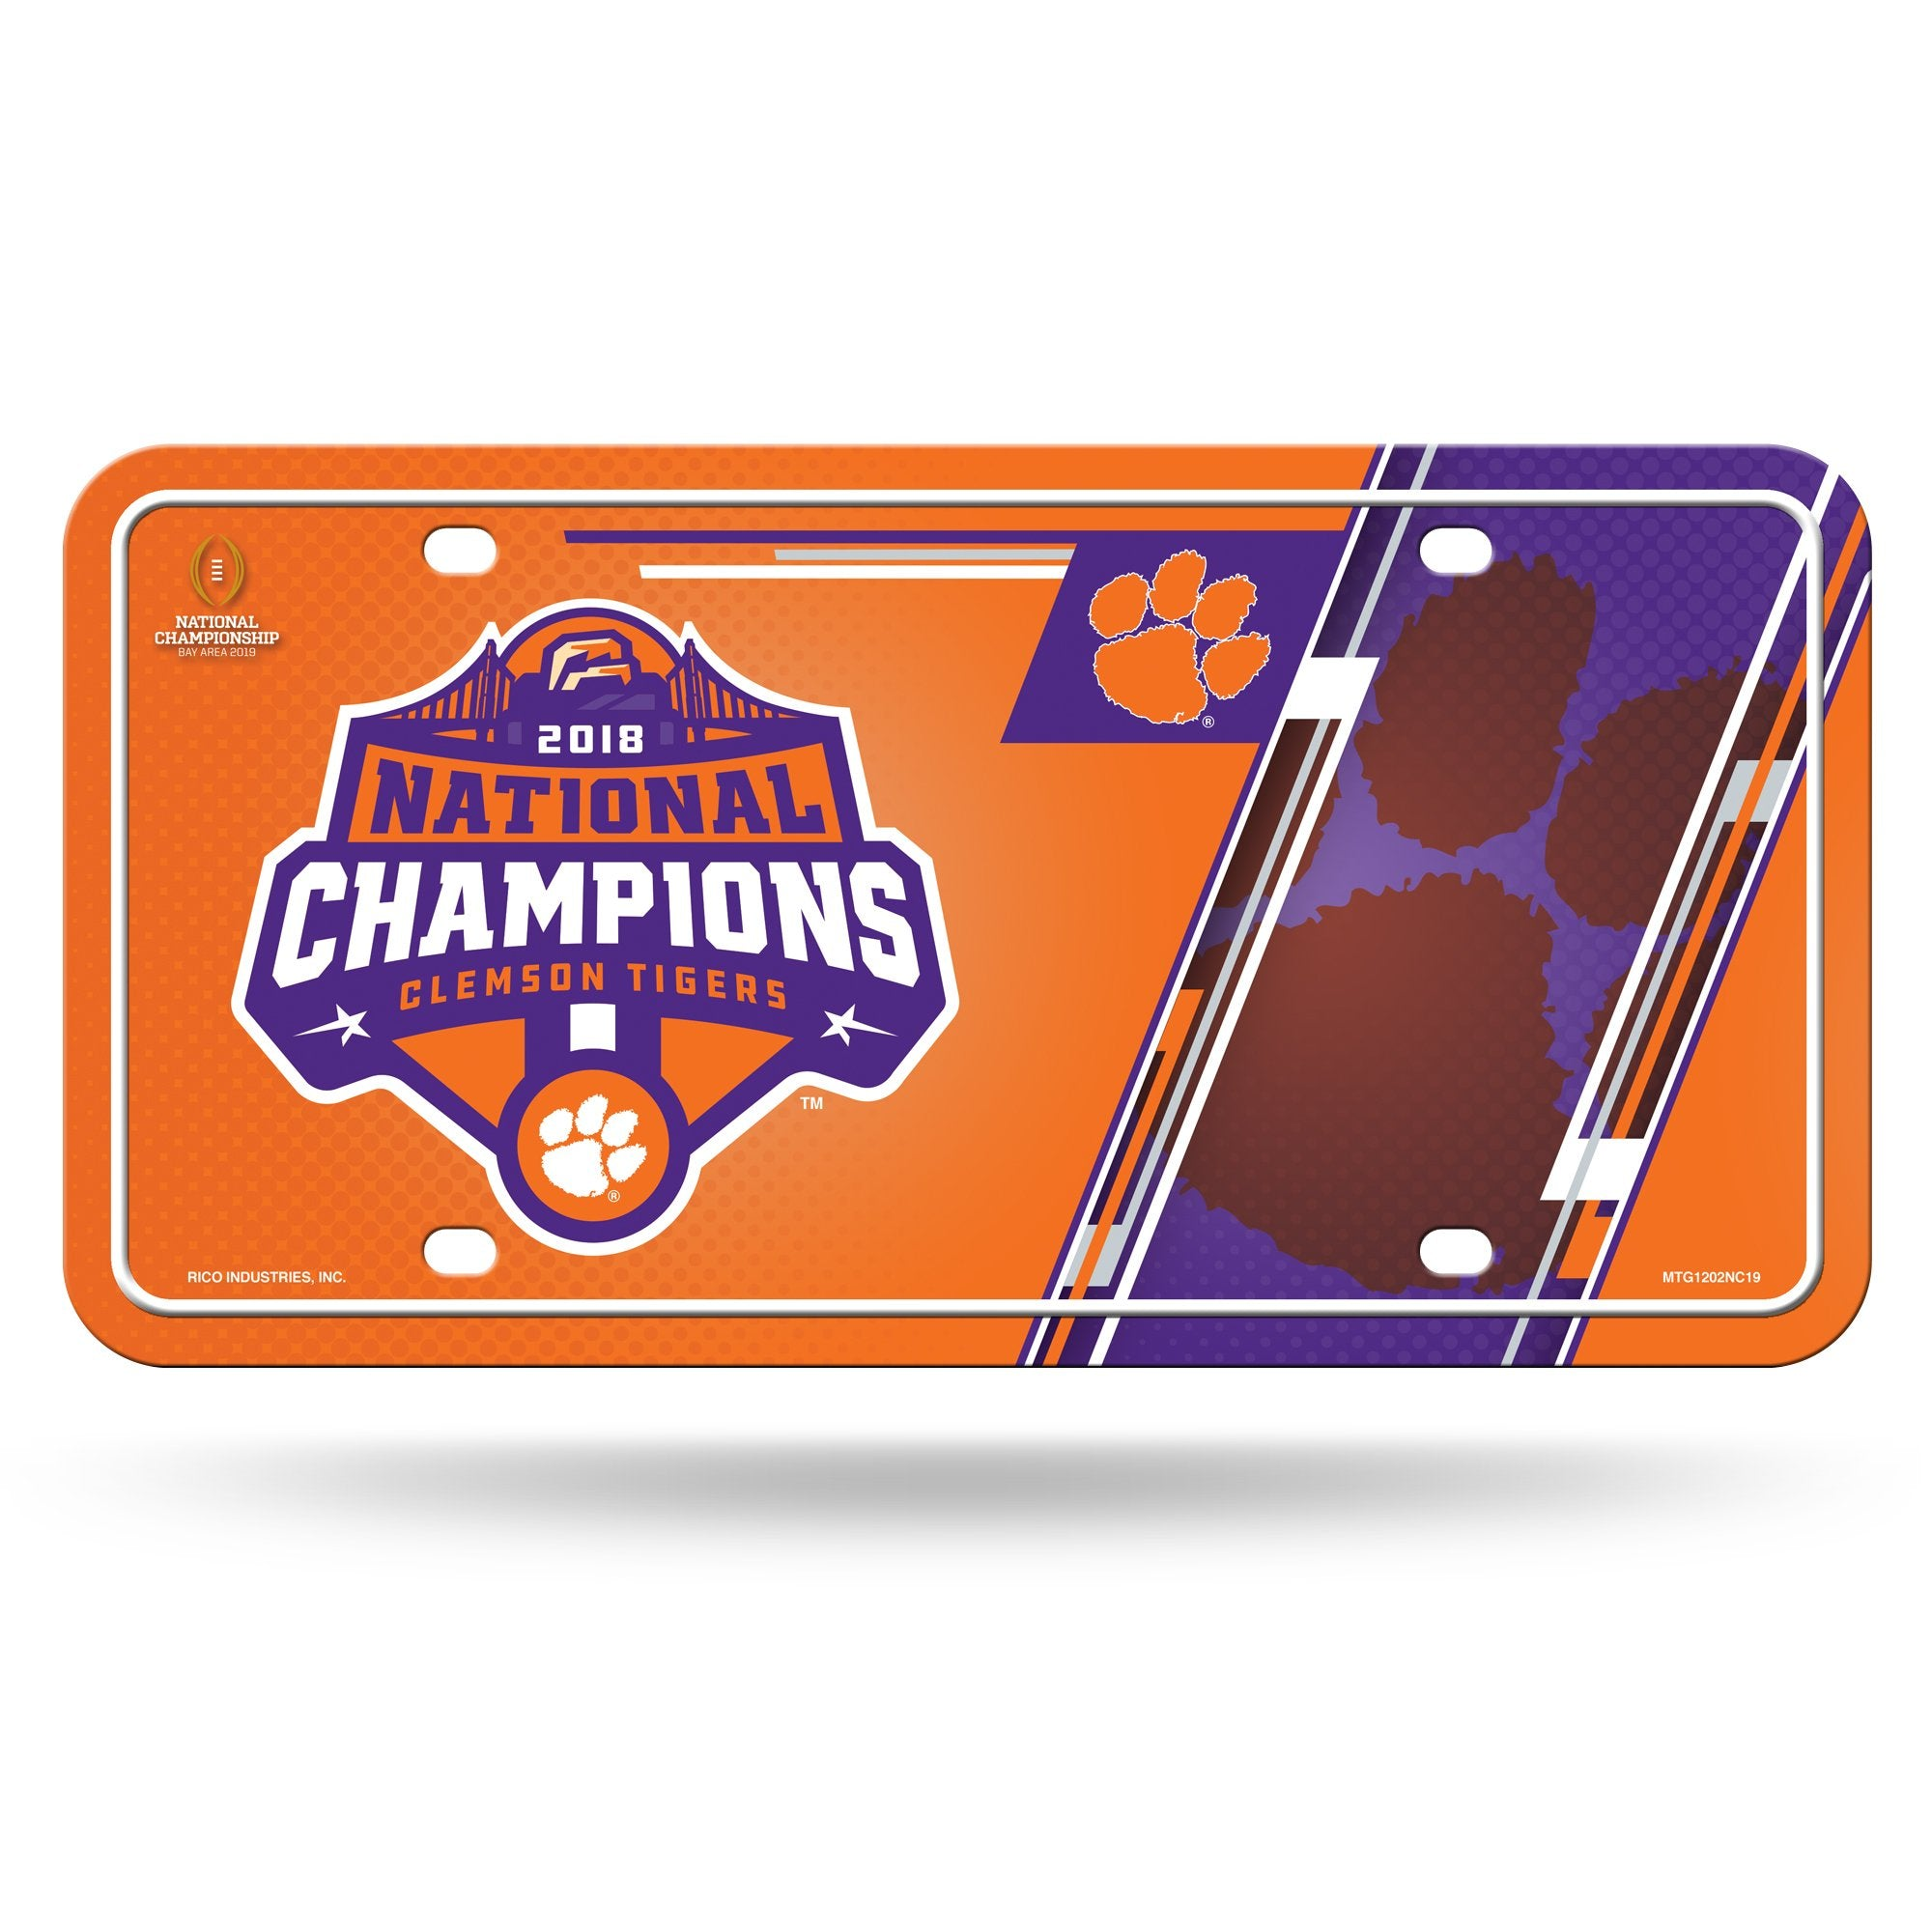 Clemson 2019 - College Football 3 Time Champions Metal Tag - Mr. Knickerbocker